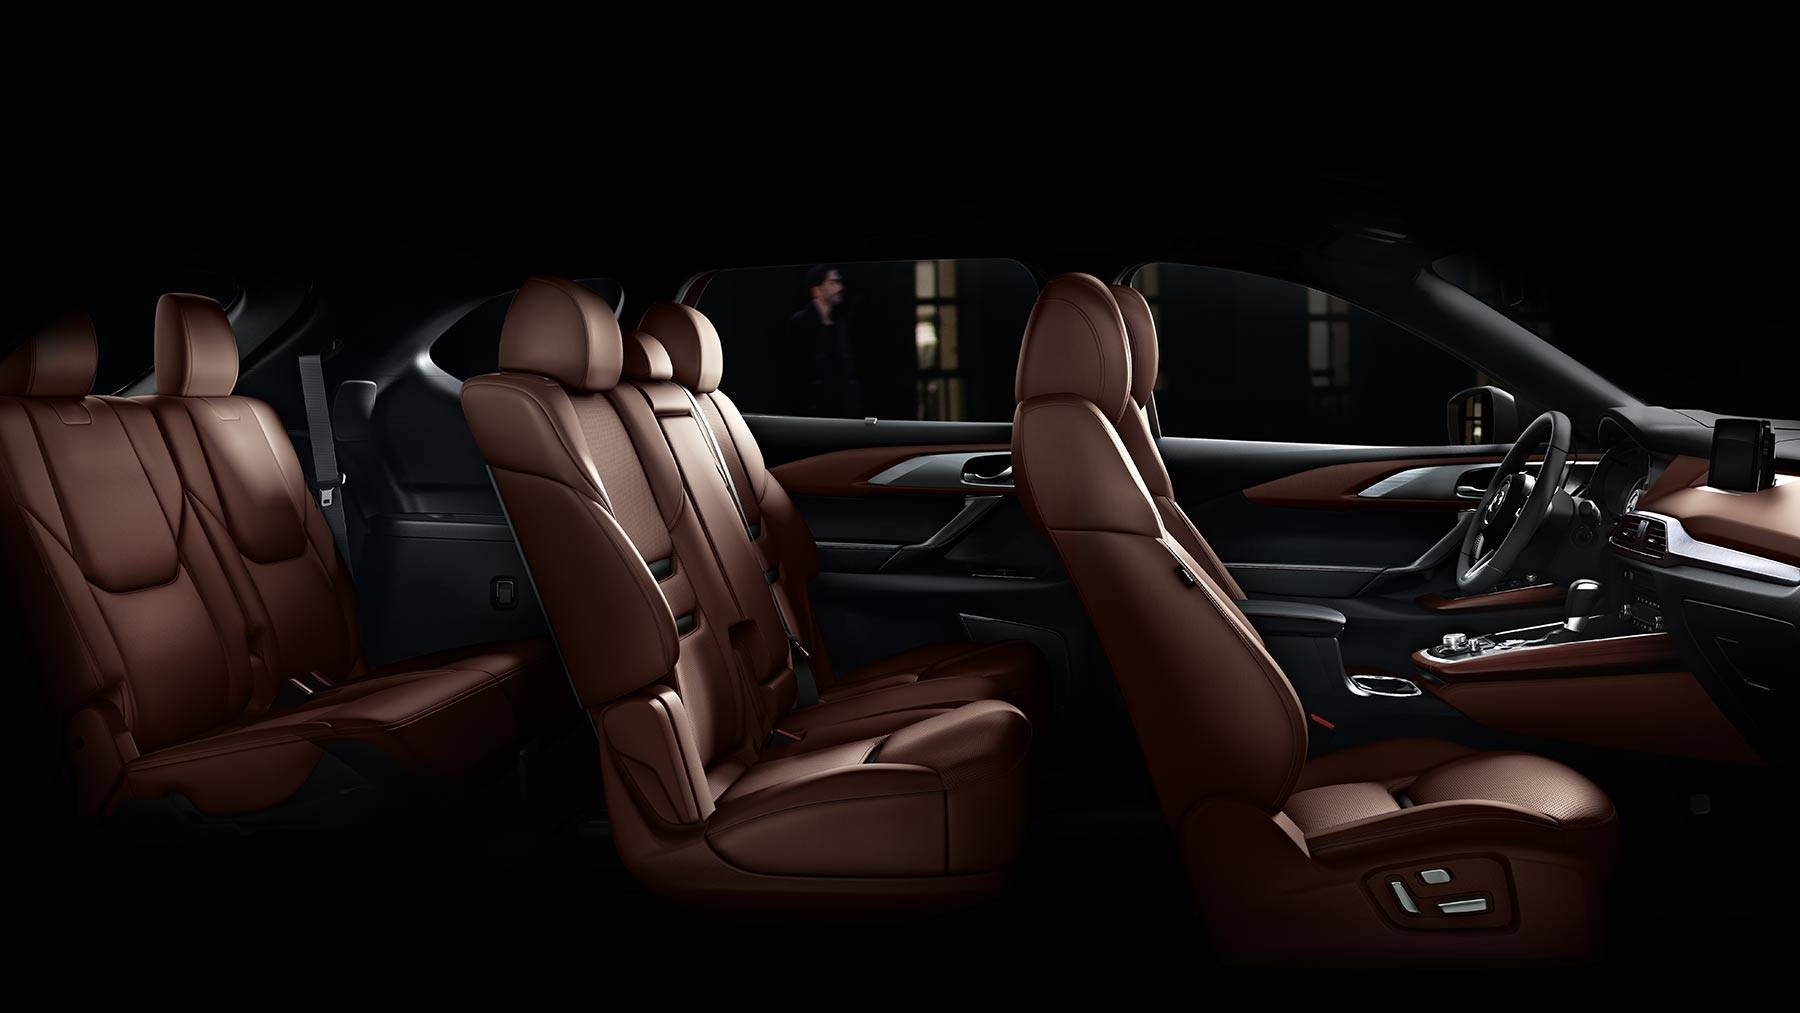 Take the Whole Family Along in the Mazda CX-9!